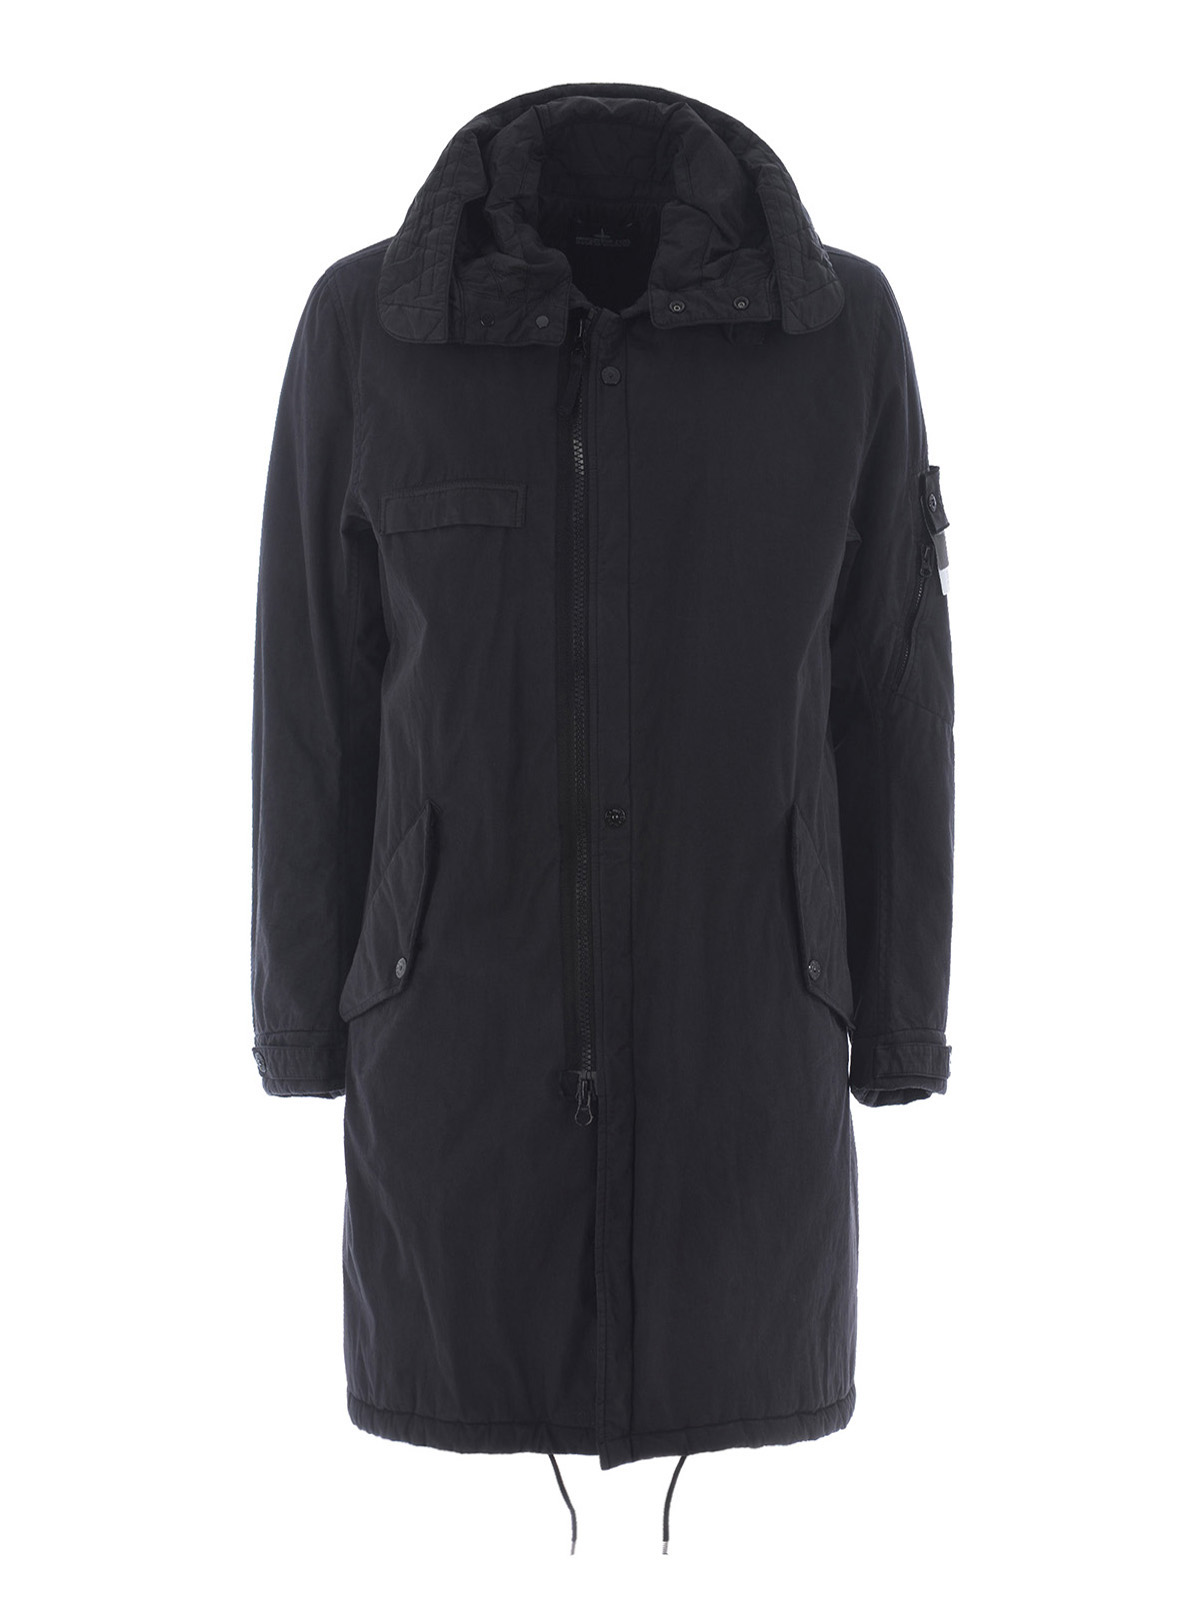 fishtail parka padded coat by stone island padded coats. Black Bedroom Furniture Sets. Home Design Ideas